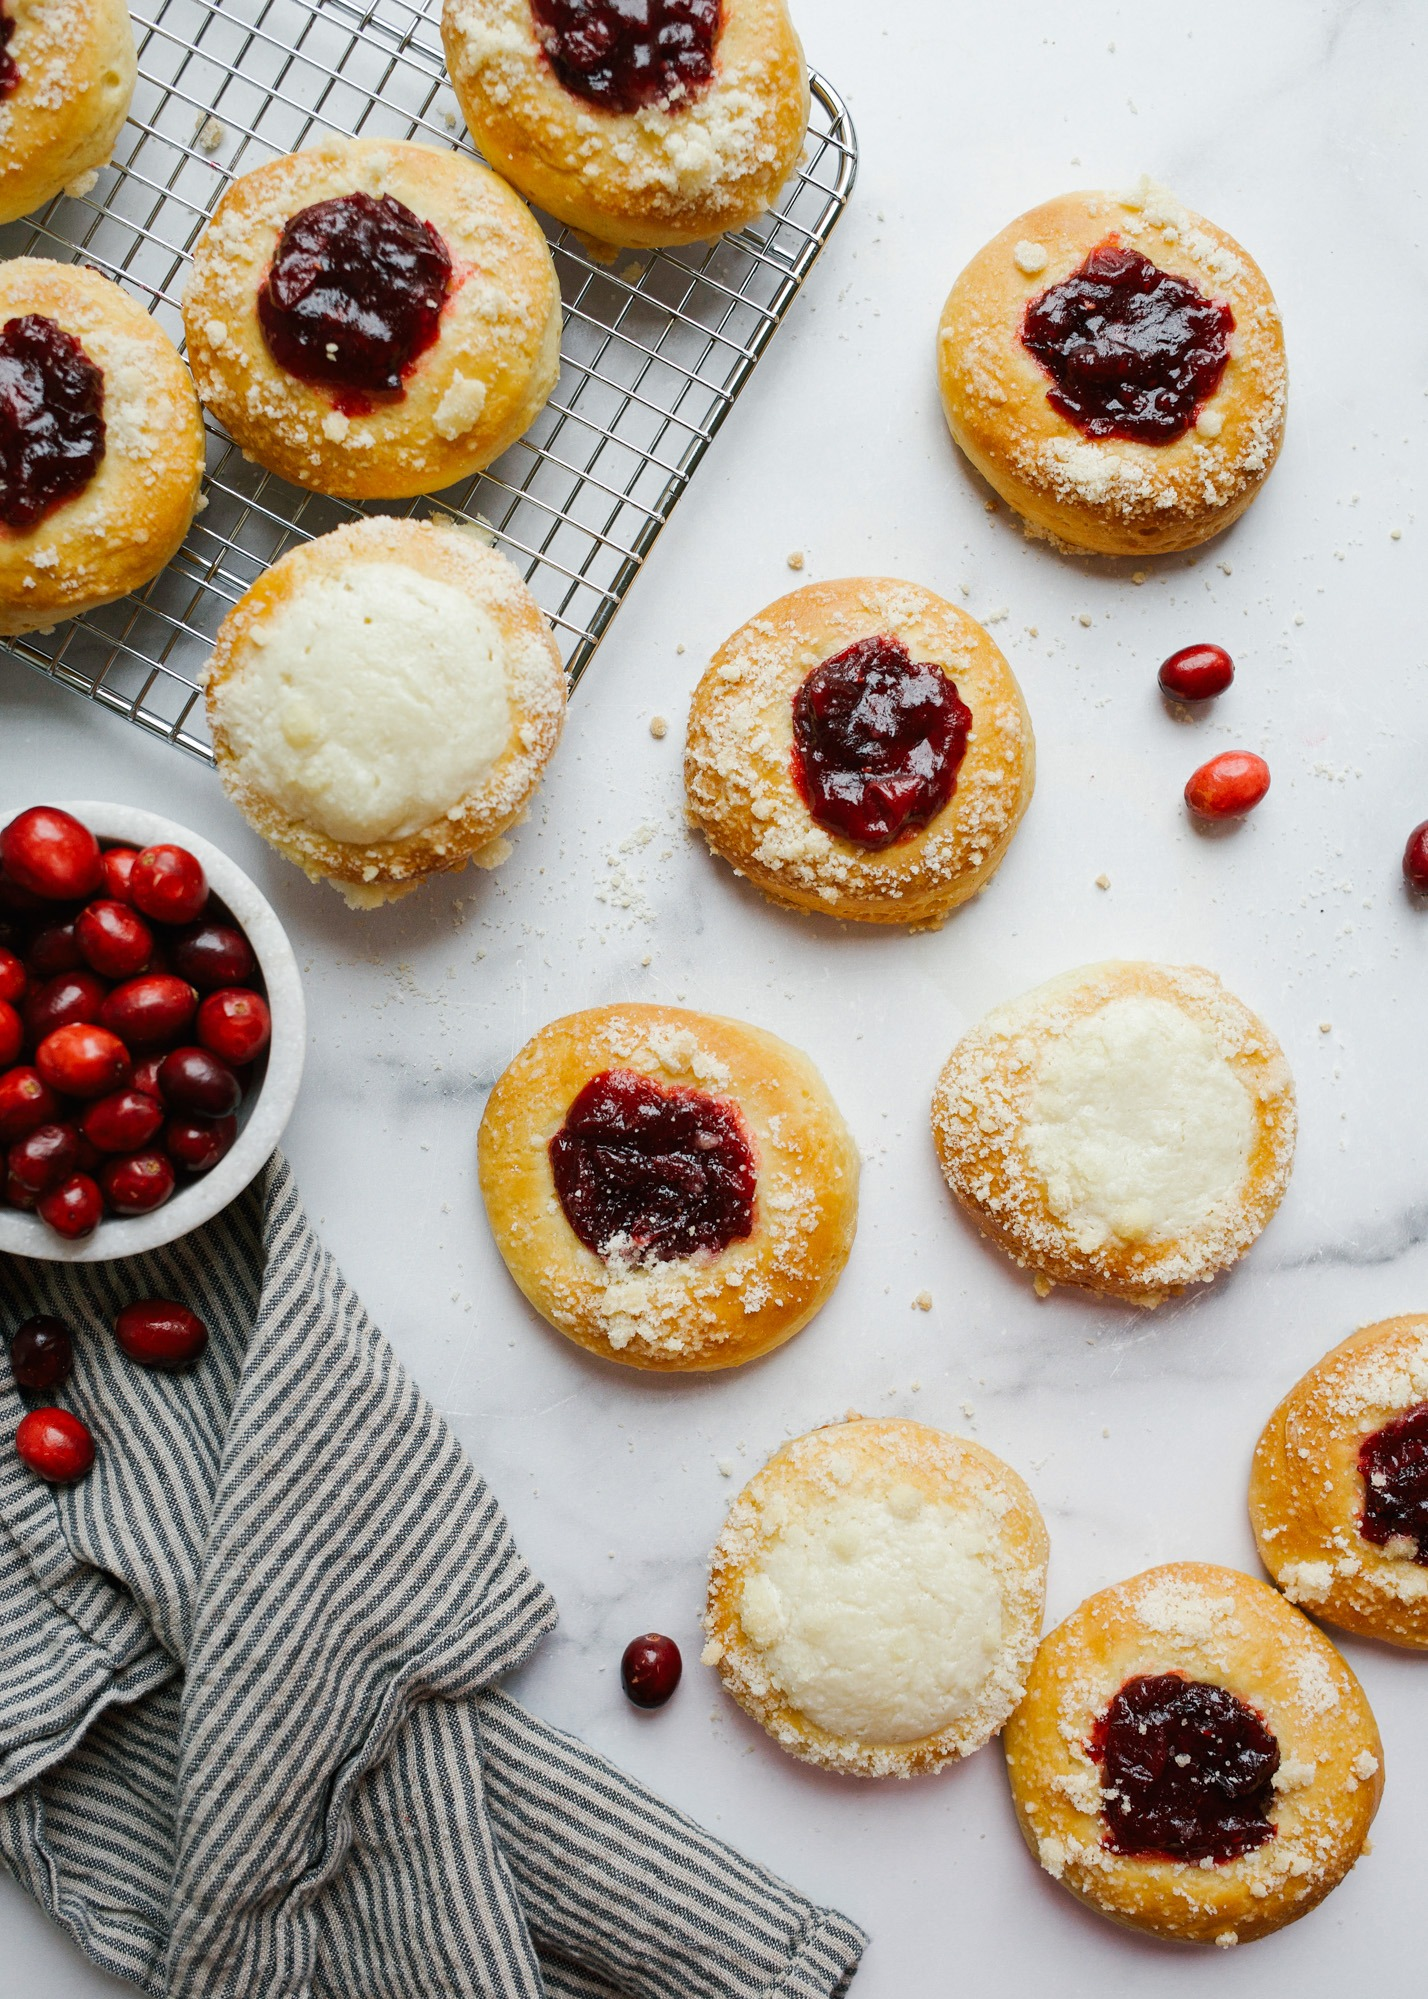 Cranberry Kolaches by Wood and Spoonn blog. These are little puffy sweat yeast parties filled with a homemade cinnamon and cranberry jam or sugared cream cheese filling. Each bite has a little simple crumble on top and is a great breakfast brunch or dessert option. Learn more about the recipe on thewoodandspoon.com.